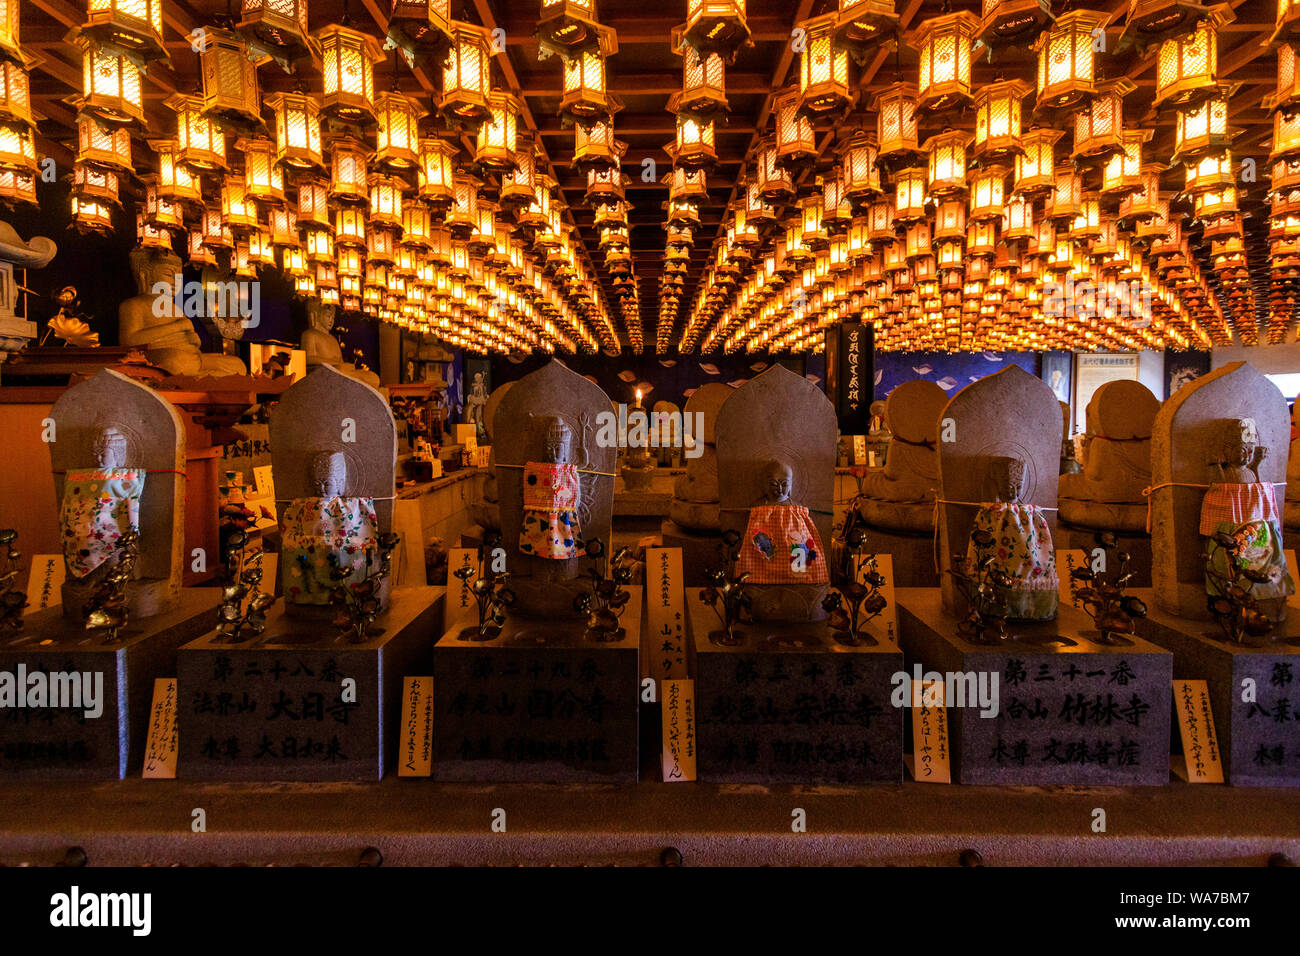 Japan, Miyajima. Daisho-in temple. Interior, Henjokutsu Cave housing the principal icons of 88 temples. Hall lit by hundreds of hanging hexagon lights. Stock Photo